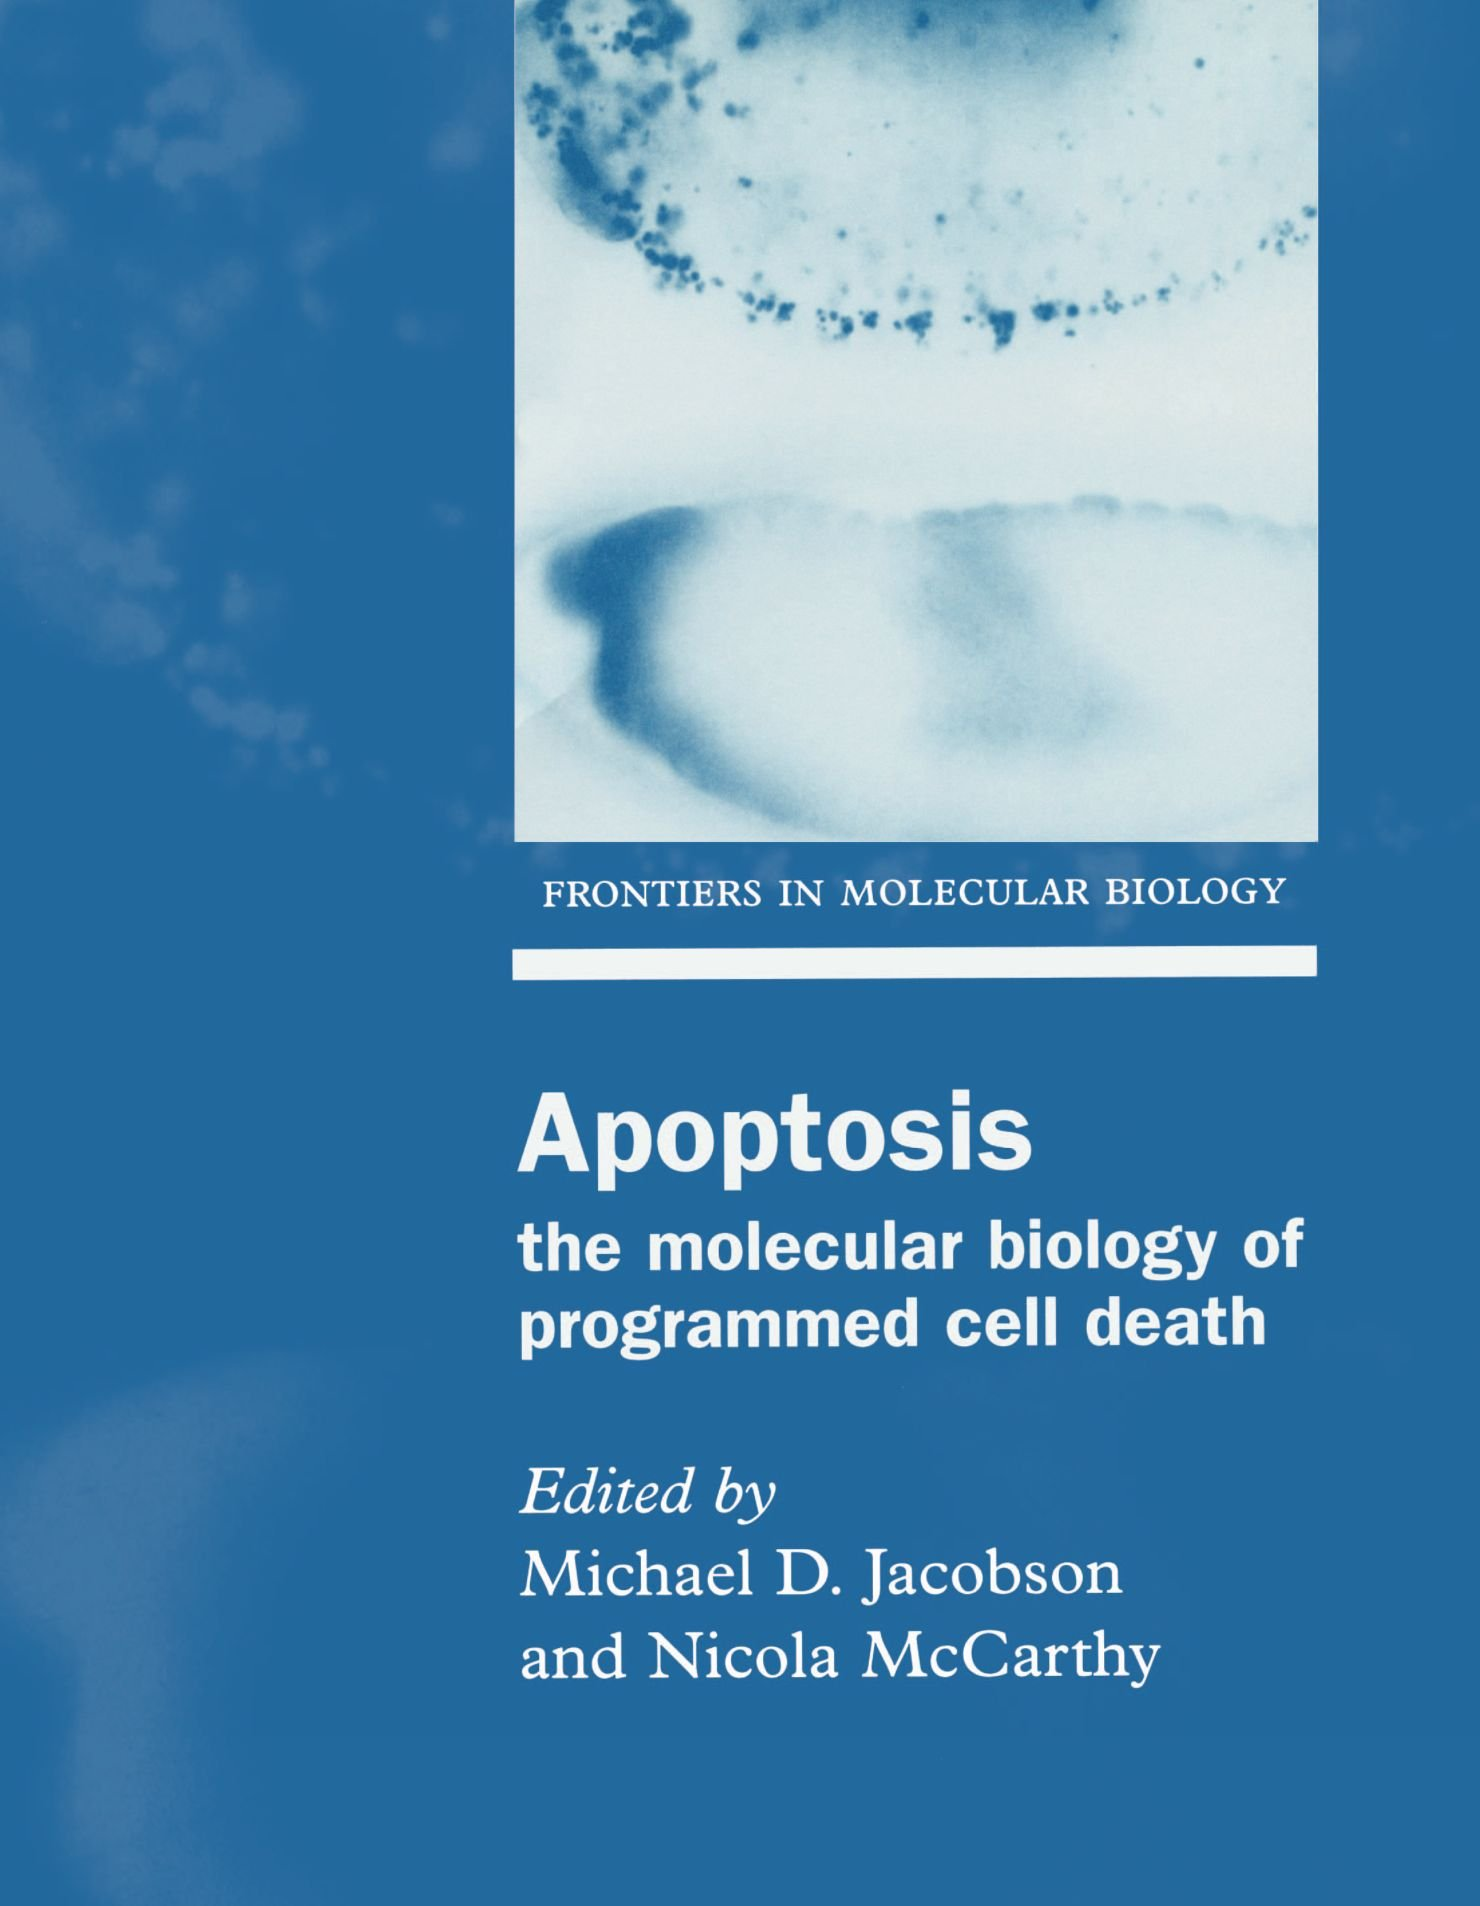 Buy Apoptosis: The molecular biology of programmed cell death (Frontiers in Molecular  Biology) Book Online at Low Prices in India | Apoptosis: The molecular ...